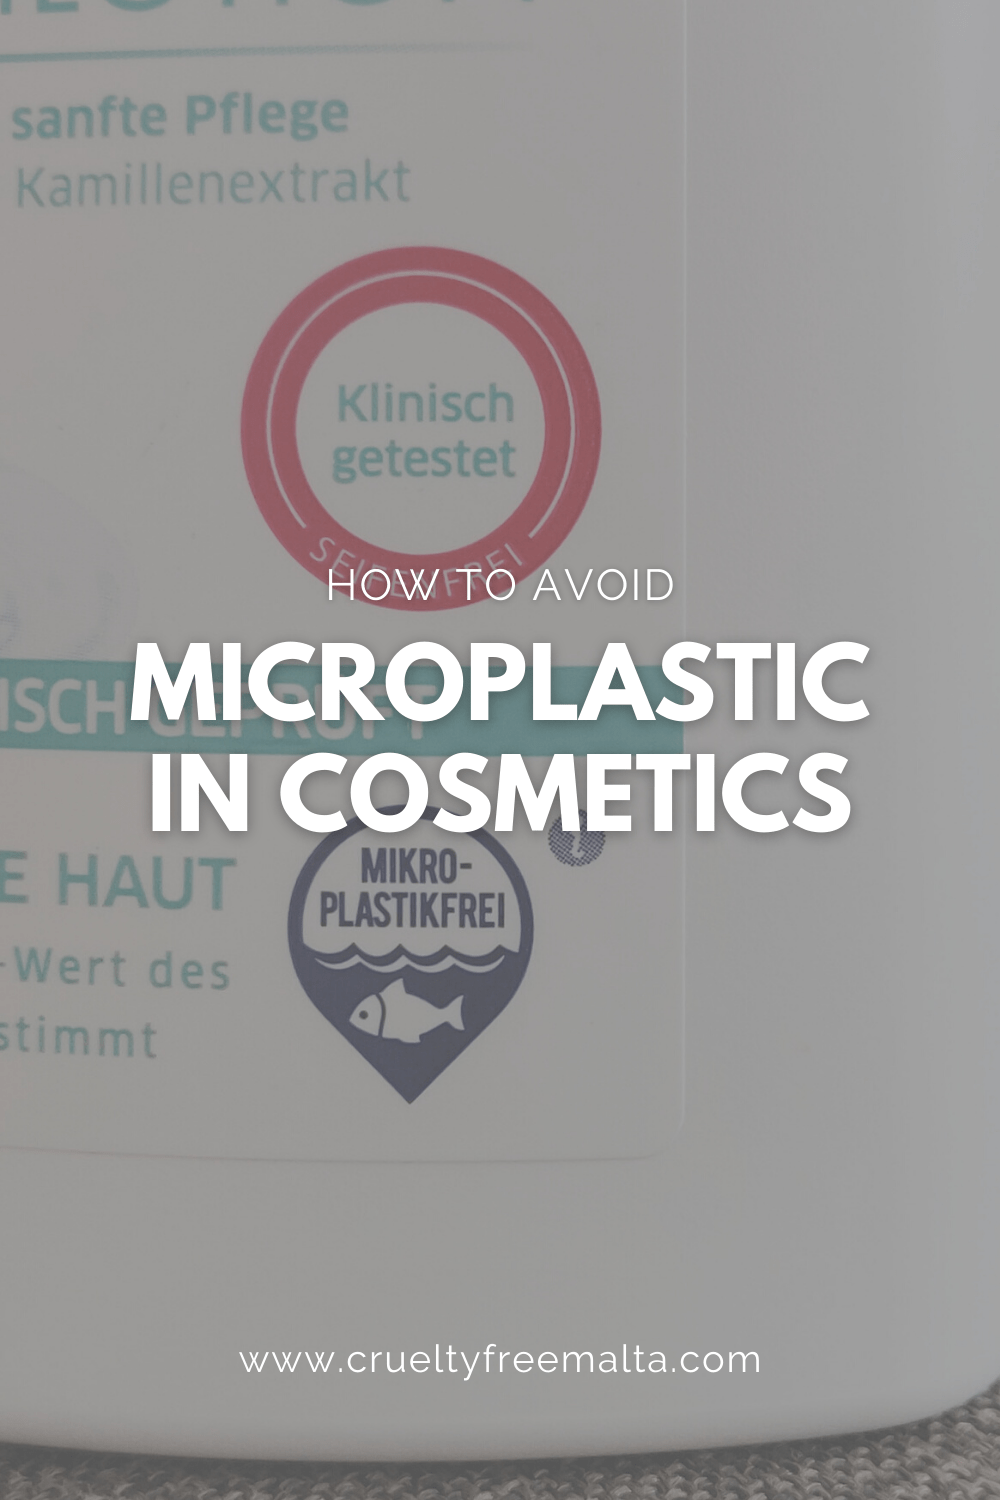 How to avoid microplastic in cosmetics